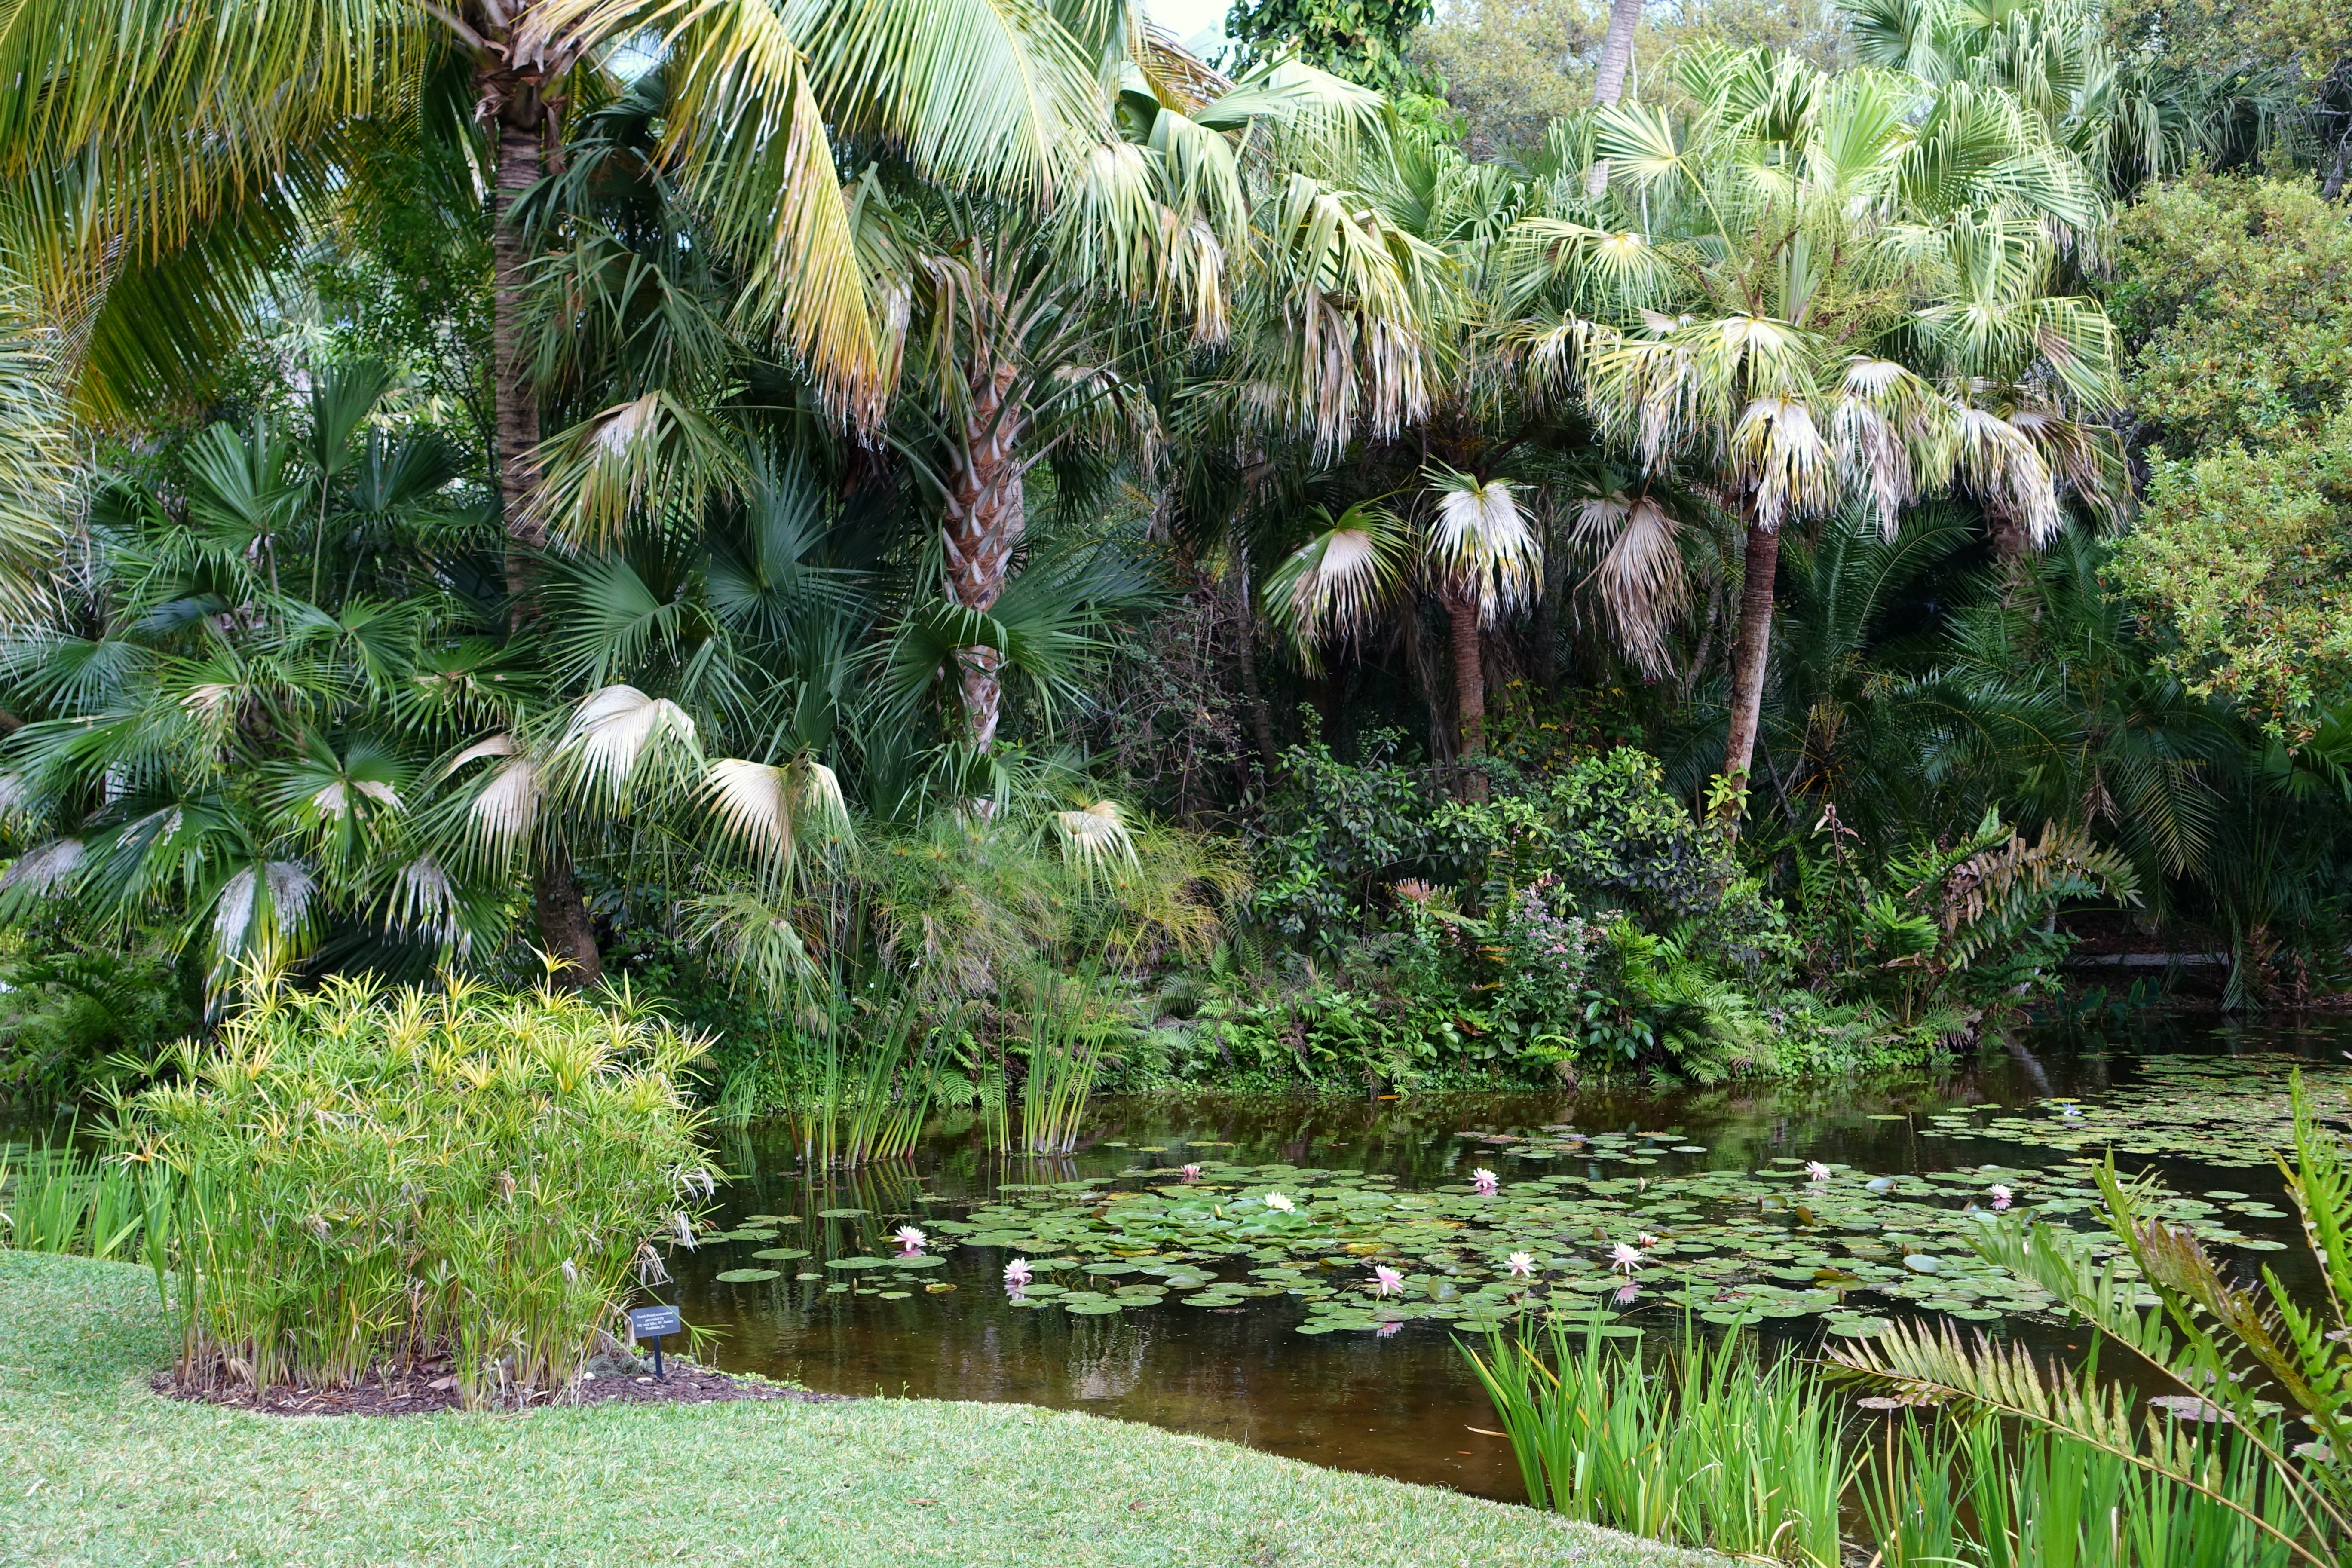 File:Pond - McKee Botanical Garden - Vero Beach, Florida - DSC02985 ...